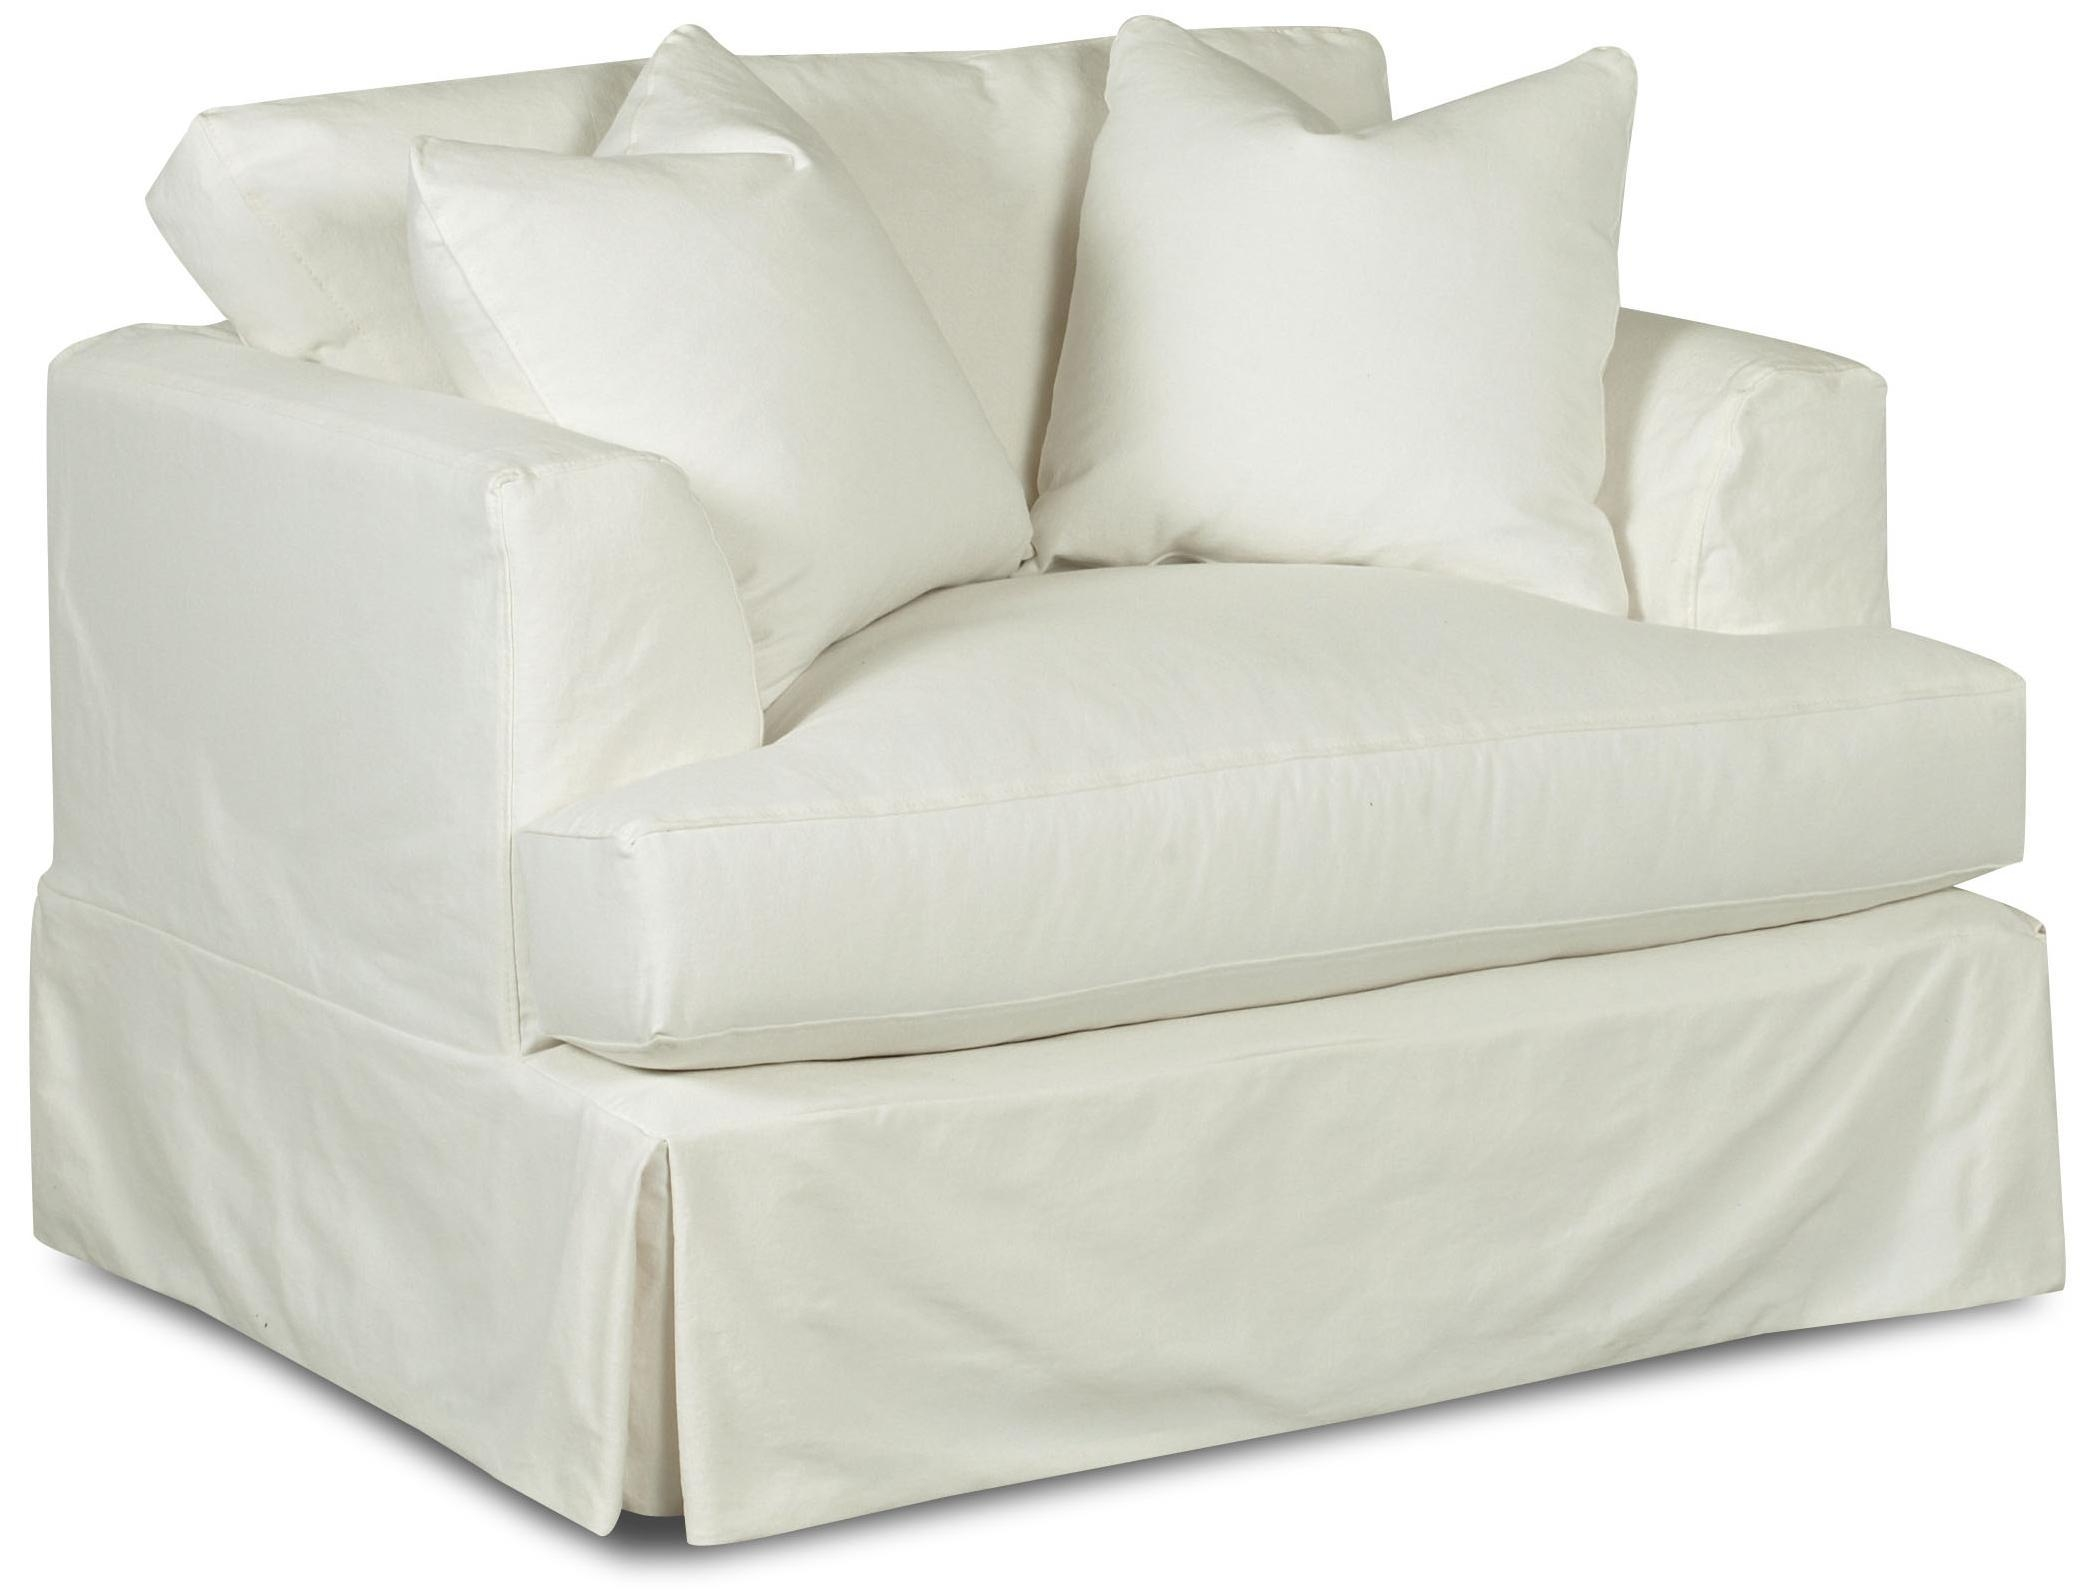 20 best overstuffed sofas and chairs sofa ideas for Sofa chair